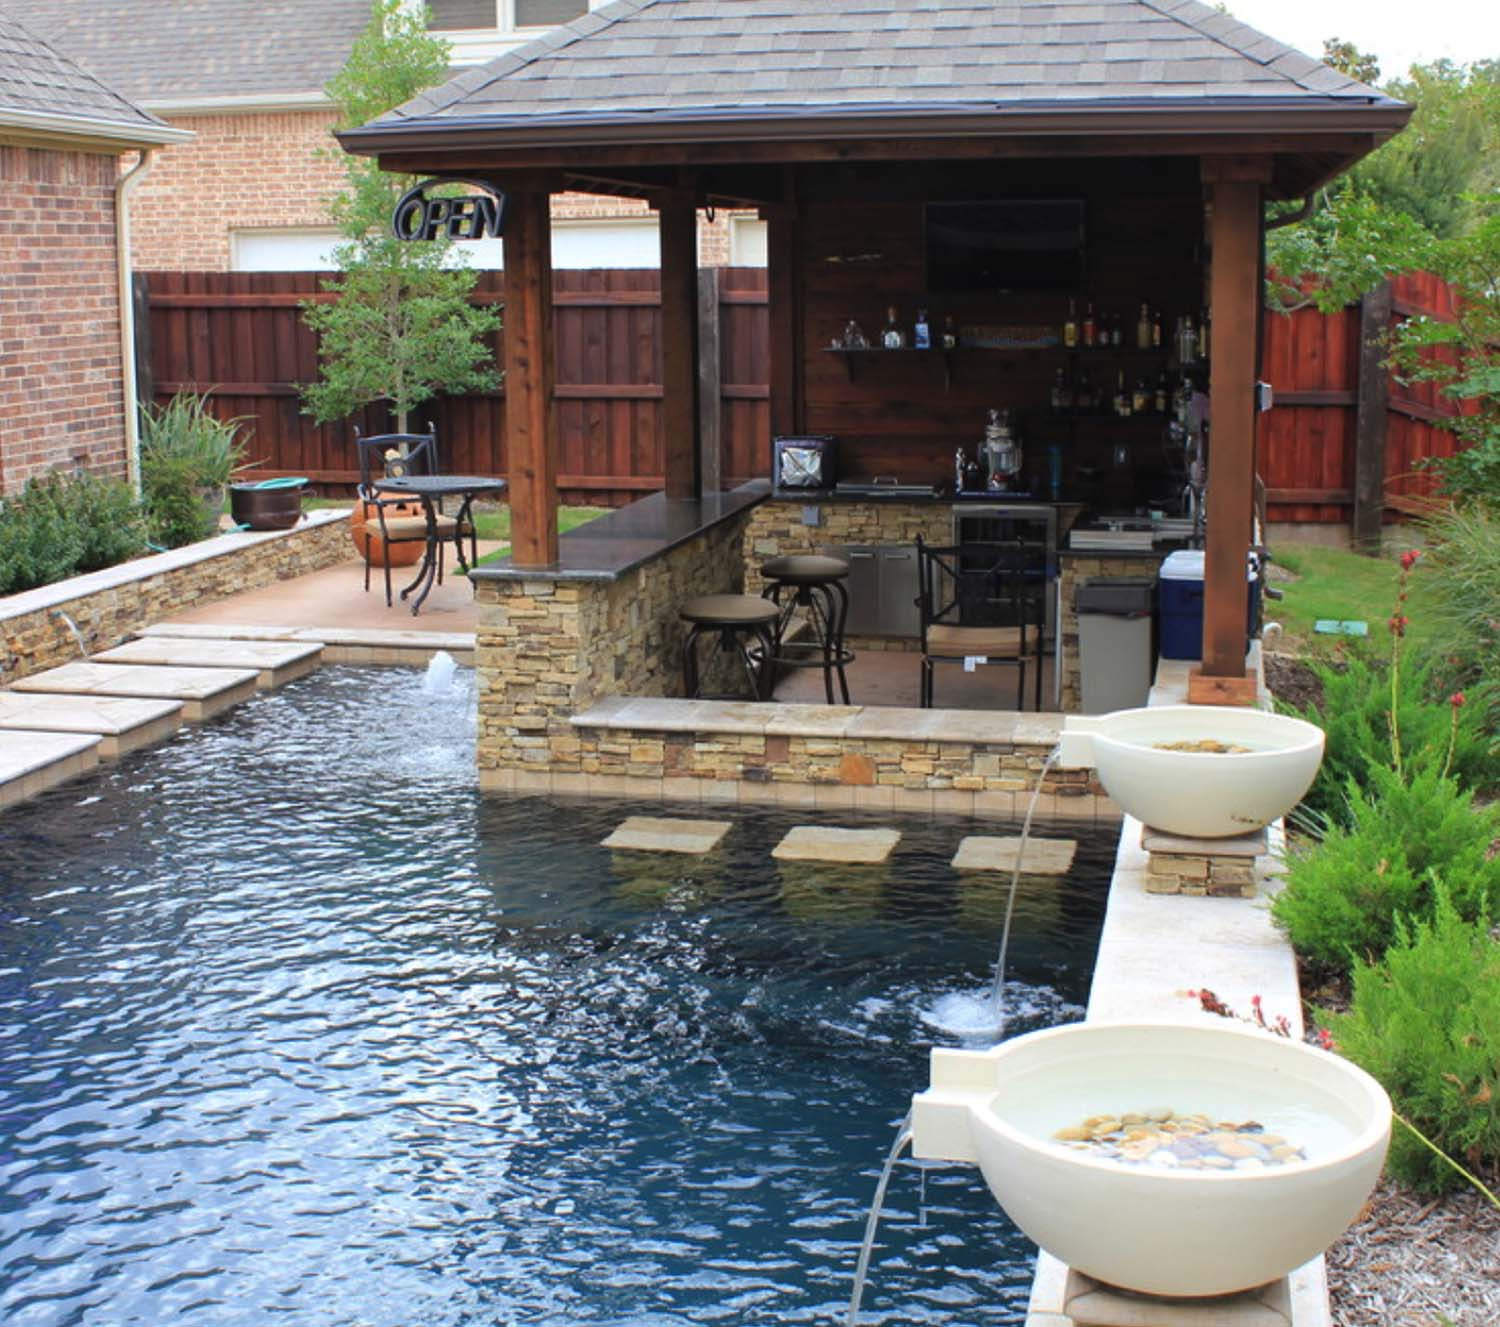 Outdoor BBQ Pits & Patios